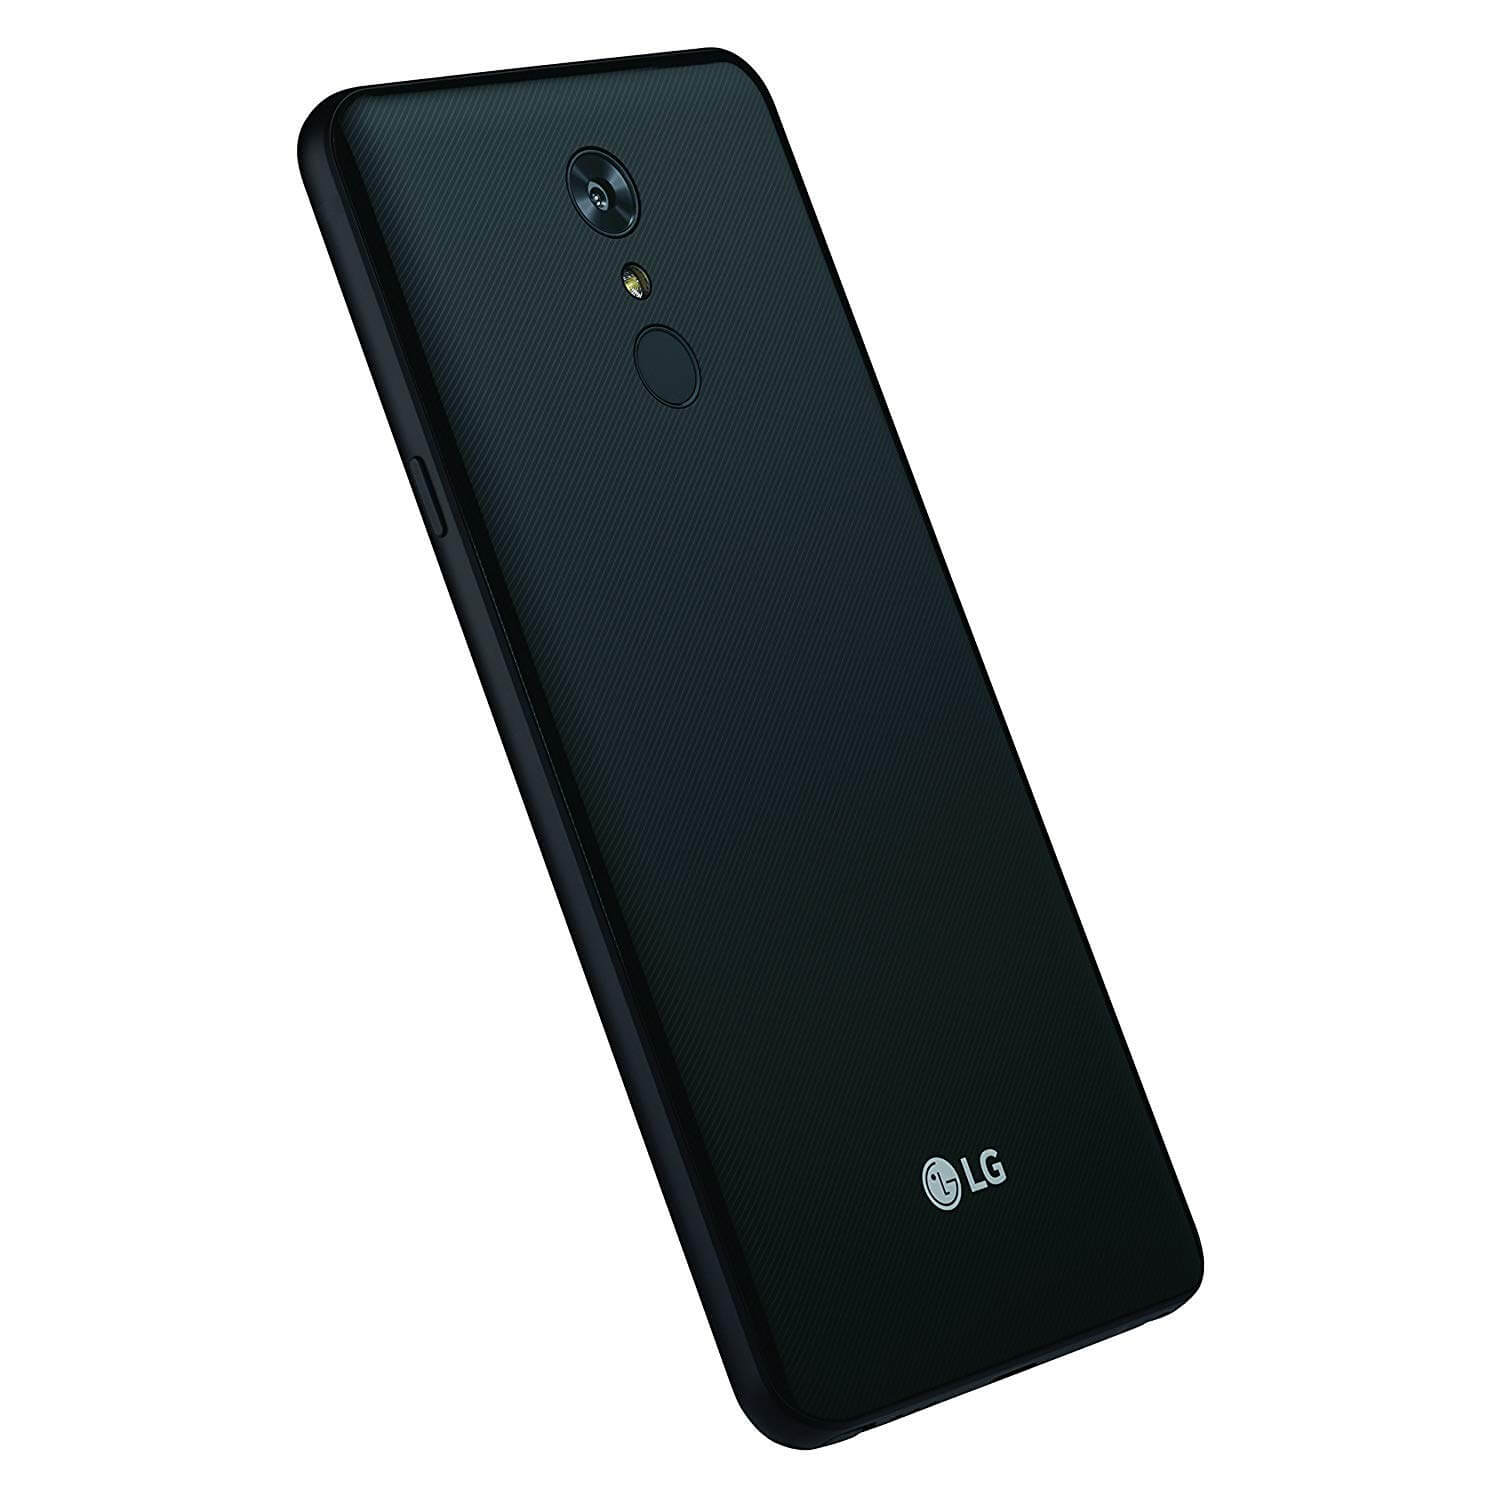 LG's Stylo 4 now available as a Prime Exclusive for $250